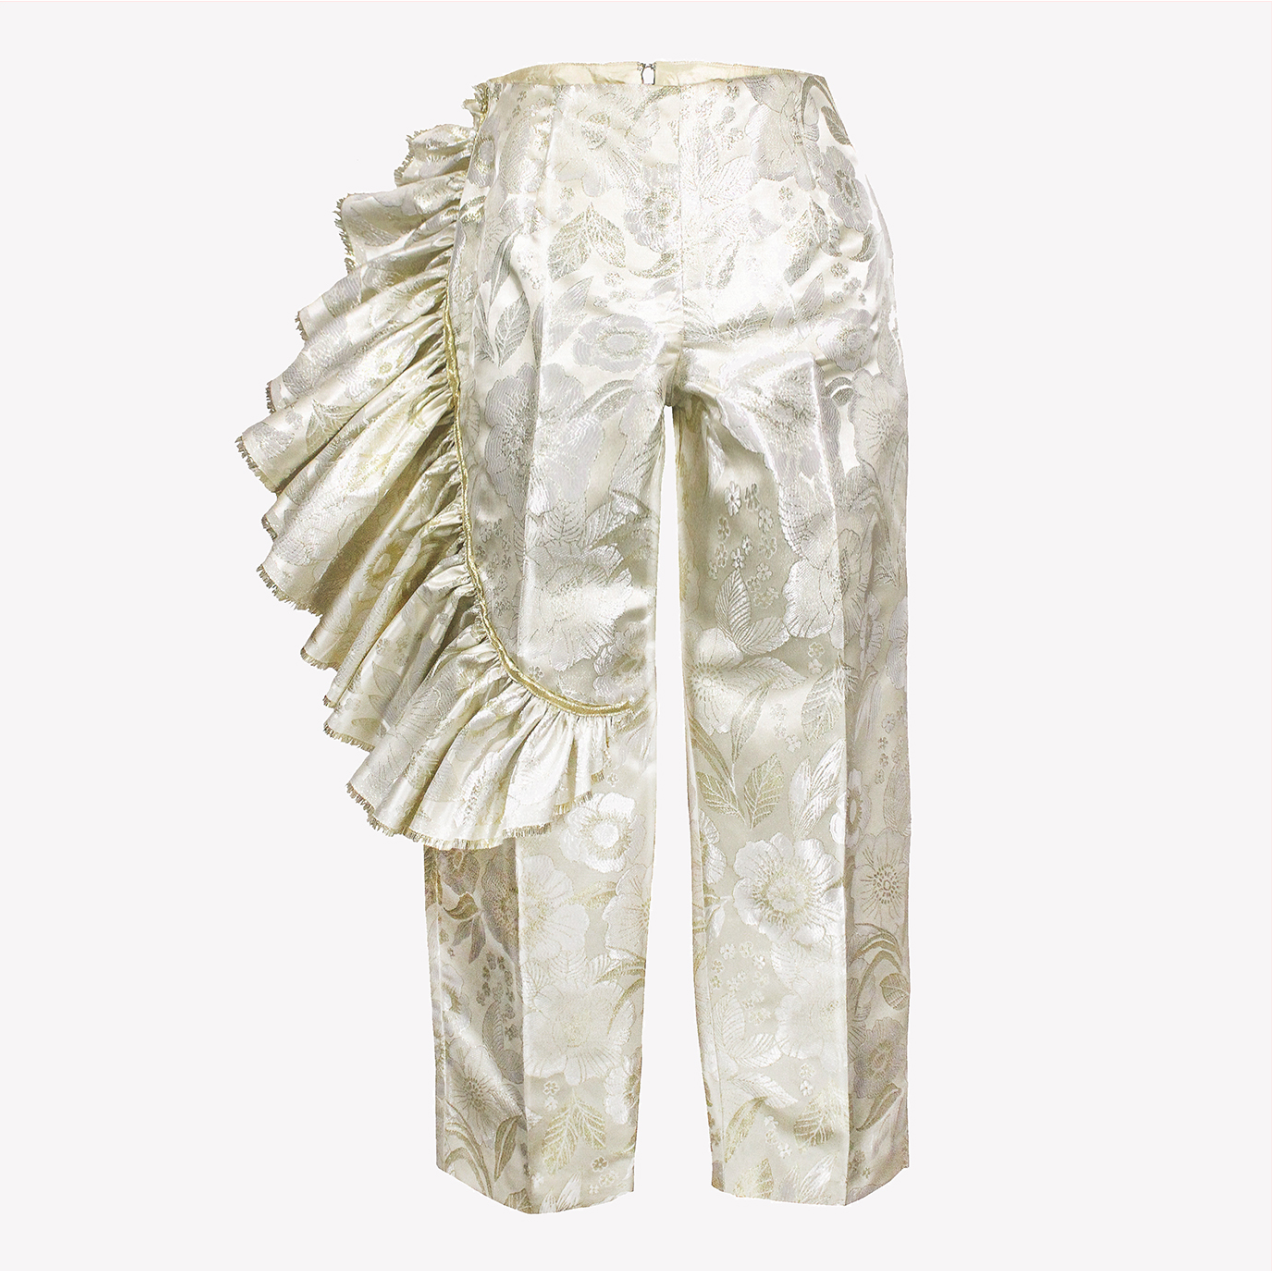 Gold brocade trousers with asymmetric ruffle